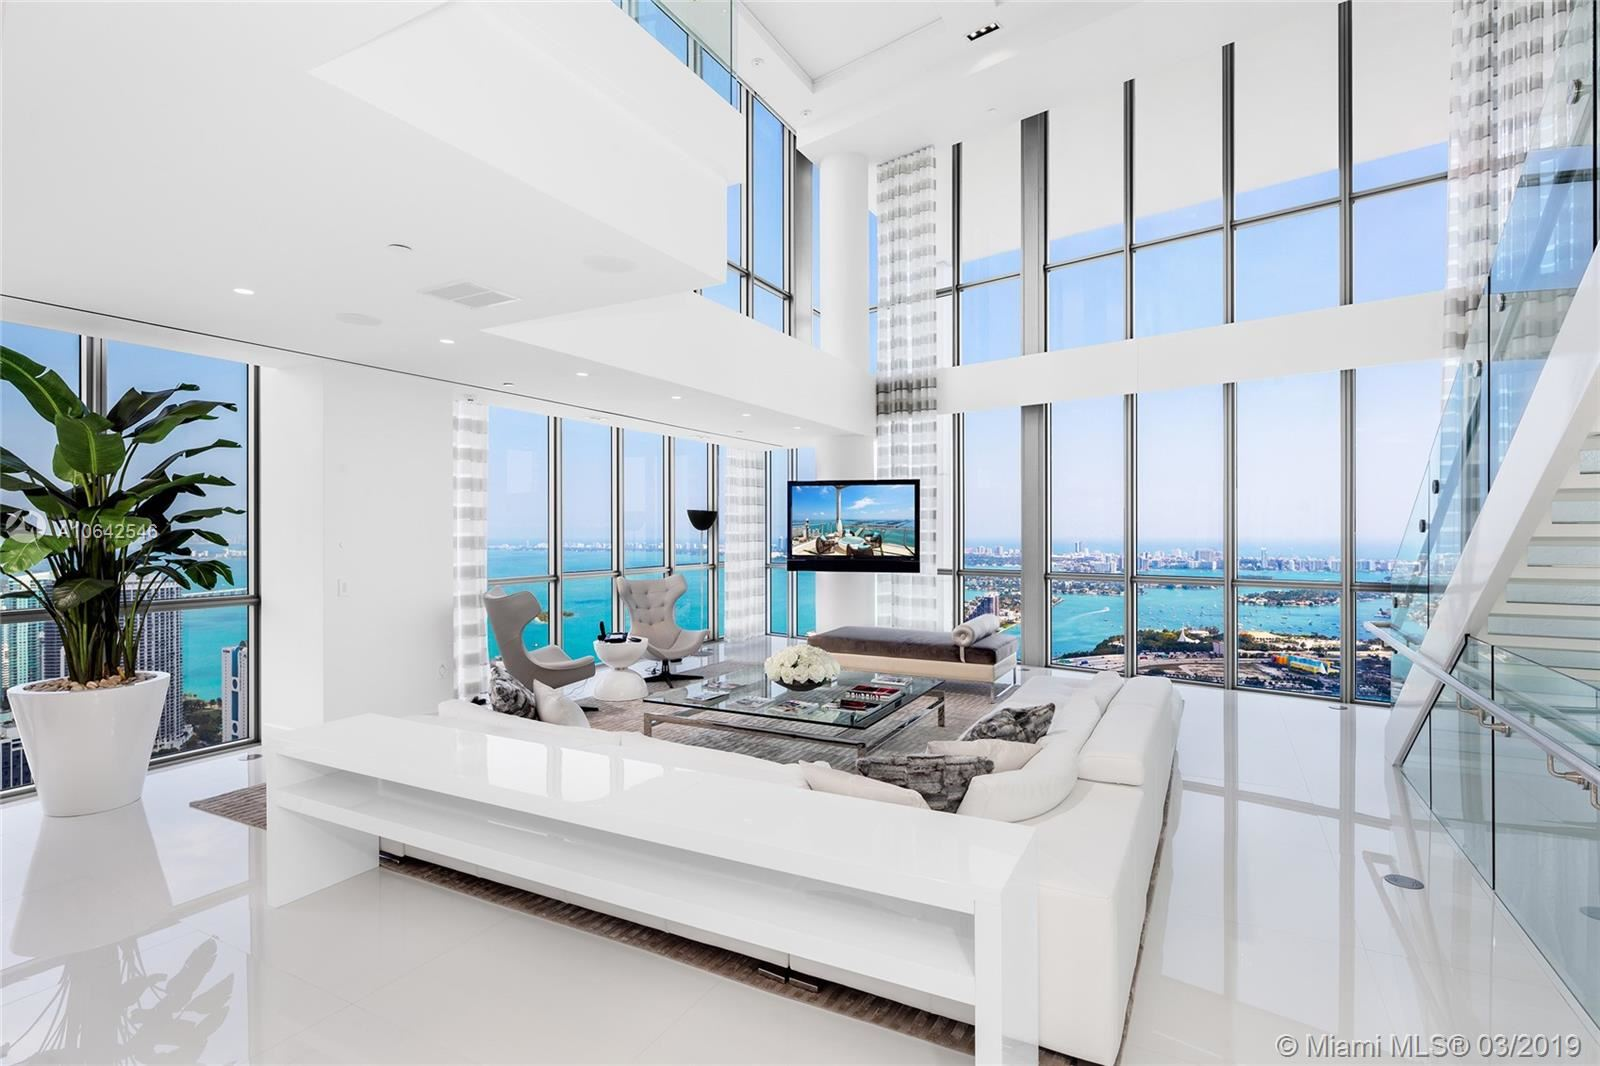 Photo 1 of Listing MLS a10642546 in 1100 Biscayne Blvd #6401 Miami FL 33132